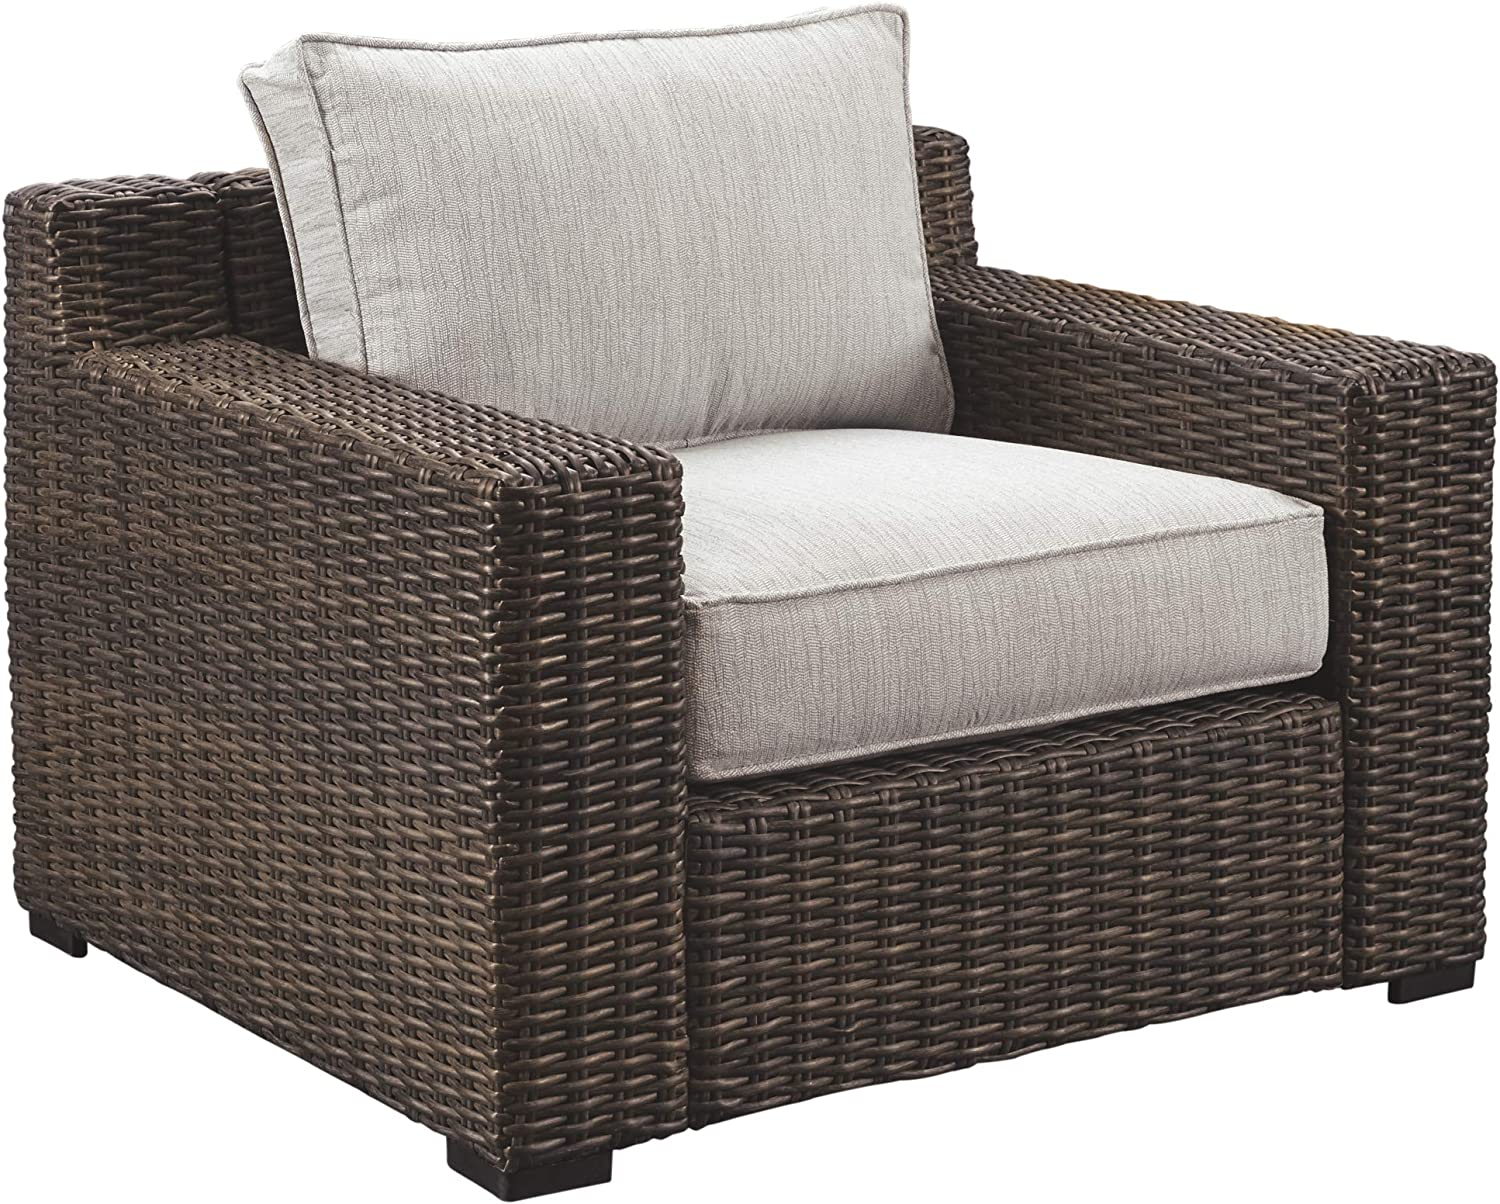 Christopher Knight Home 304426 Alisa Outdoor Acacia Wood Chaise Lounge with Cushions Set of 2 , Dark Grey, Finish